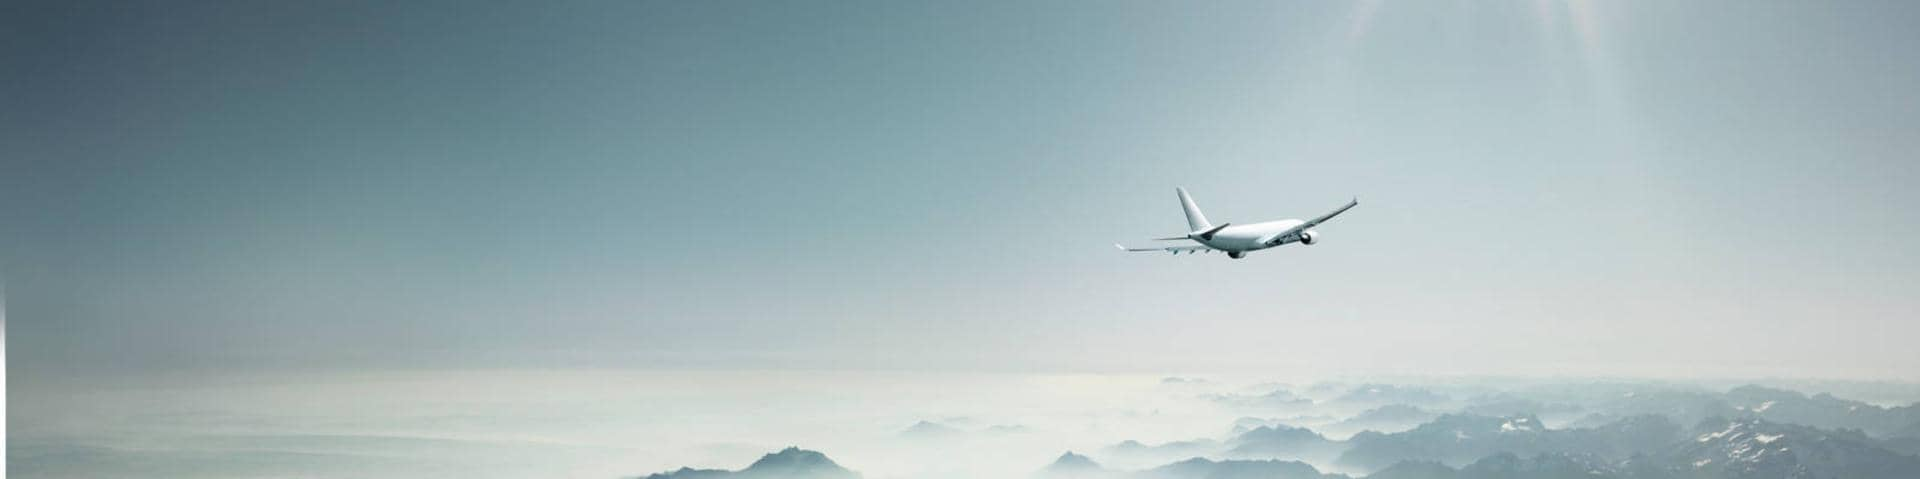 Plane_flying_landscape_air_freight